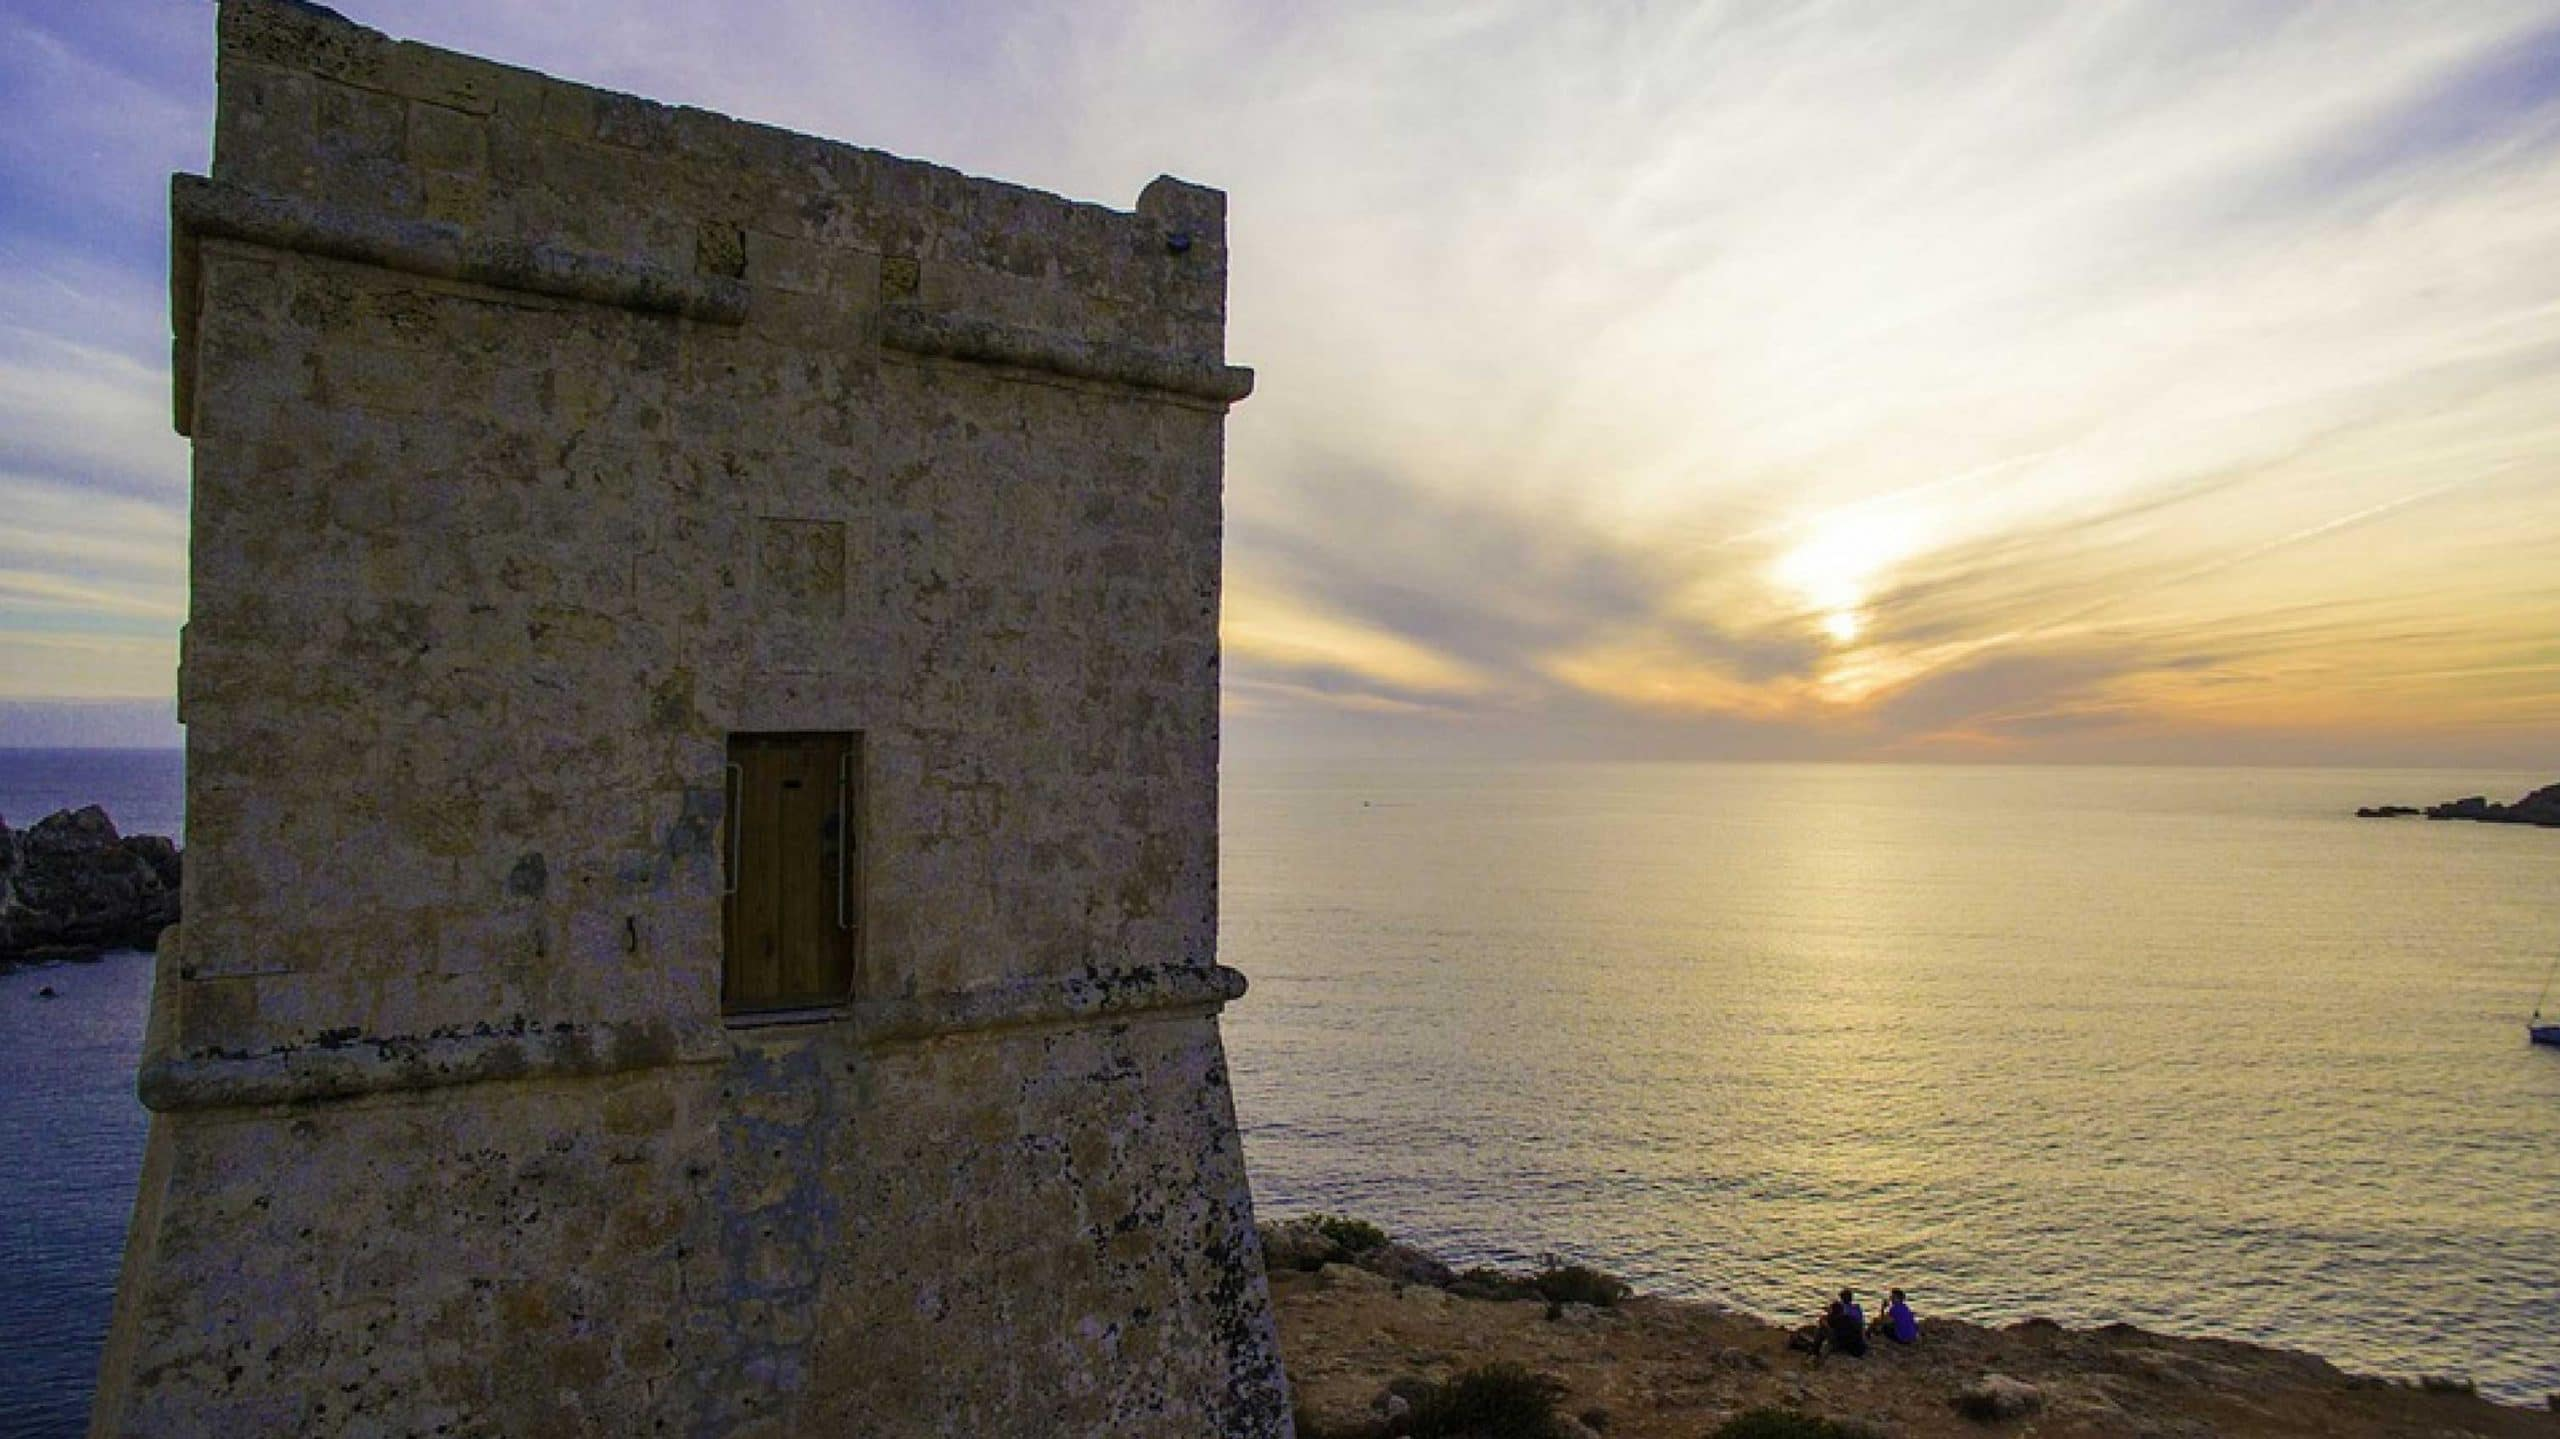 lookout tower Malta Gozo